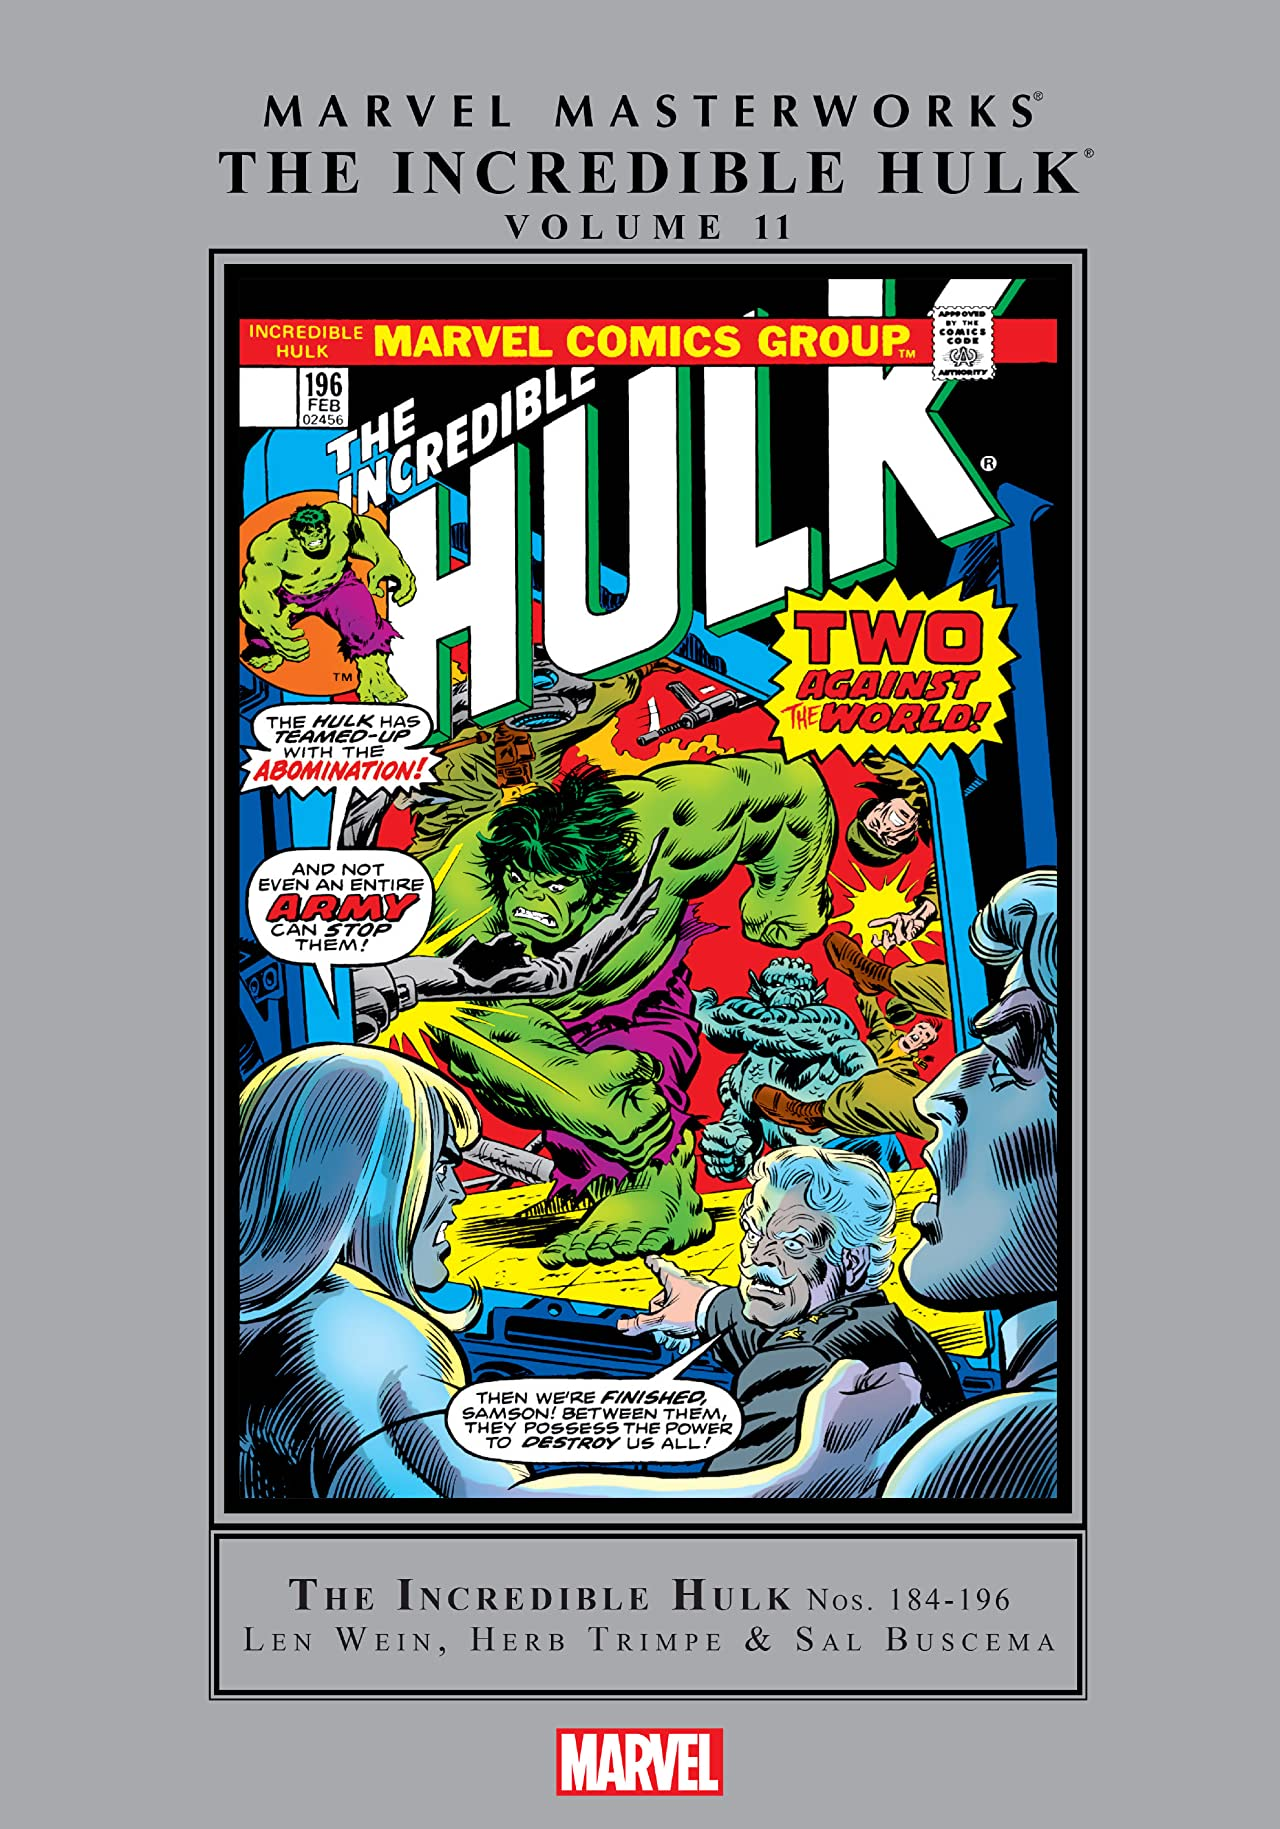 Incredible Hulk Masterworks Vol. 11